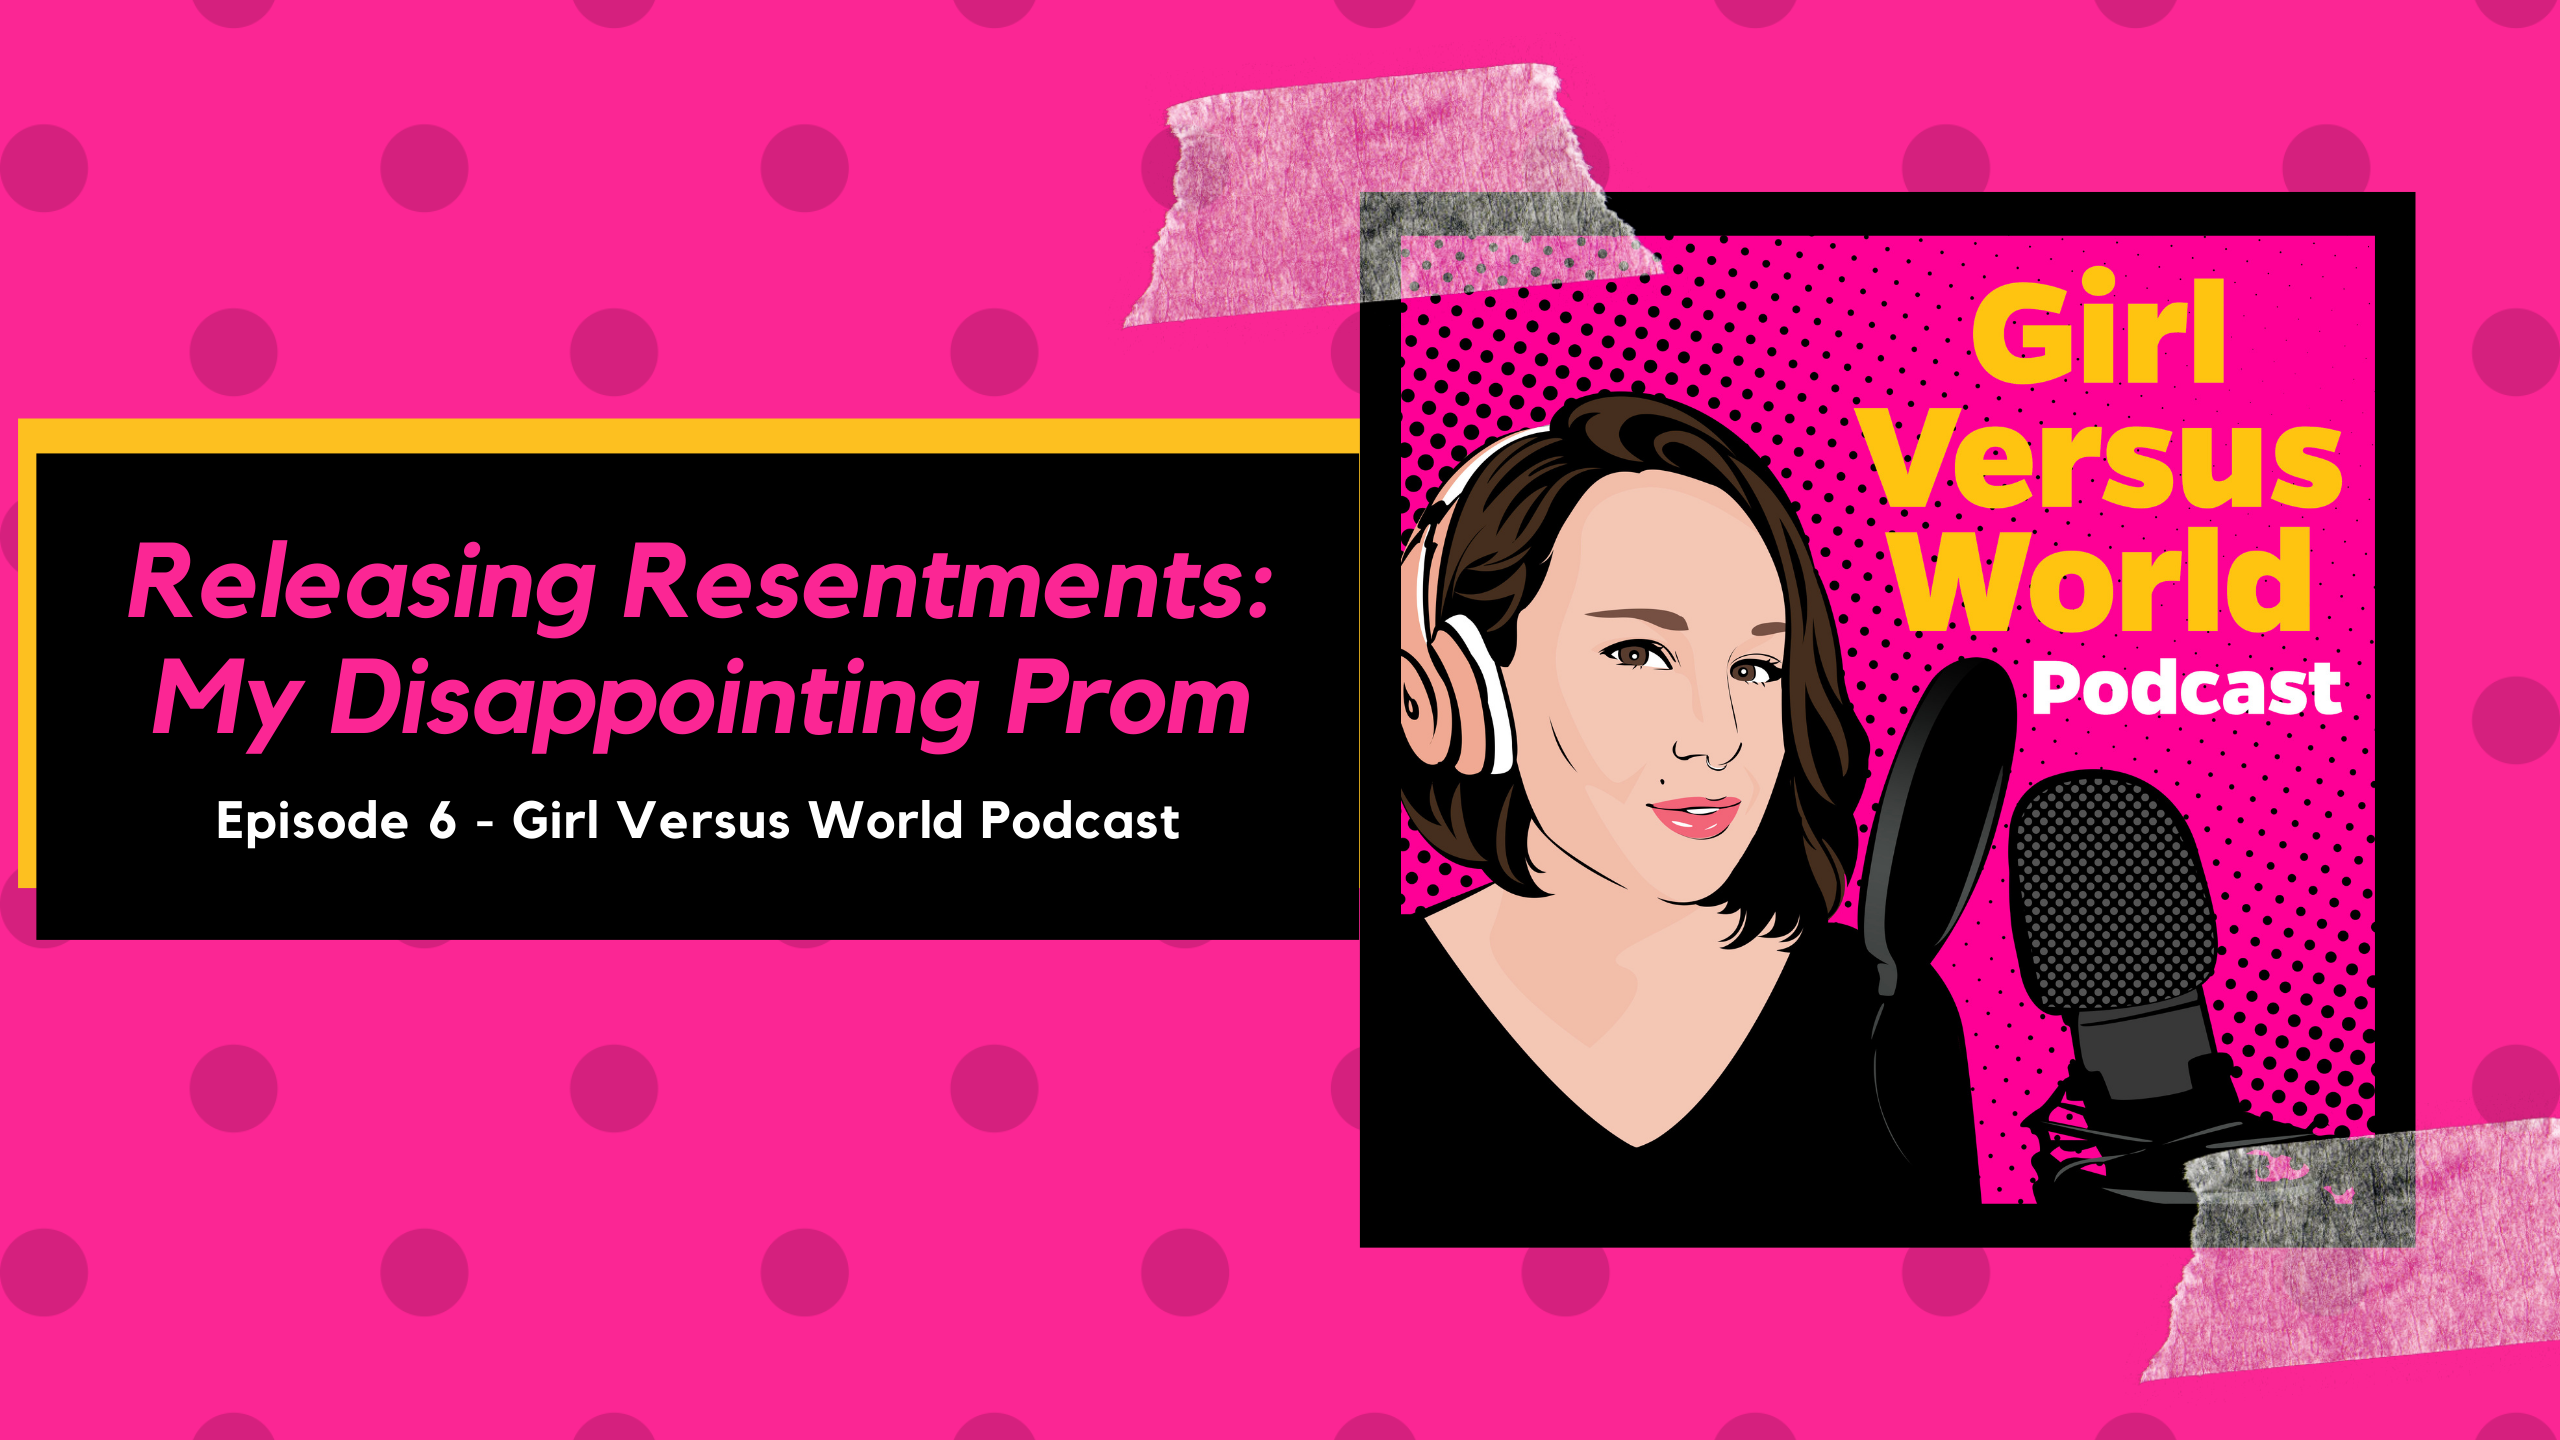 Podcast Episode 6: Releasing Resentments – Learning to Grieve